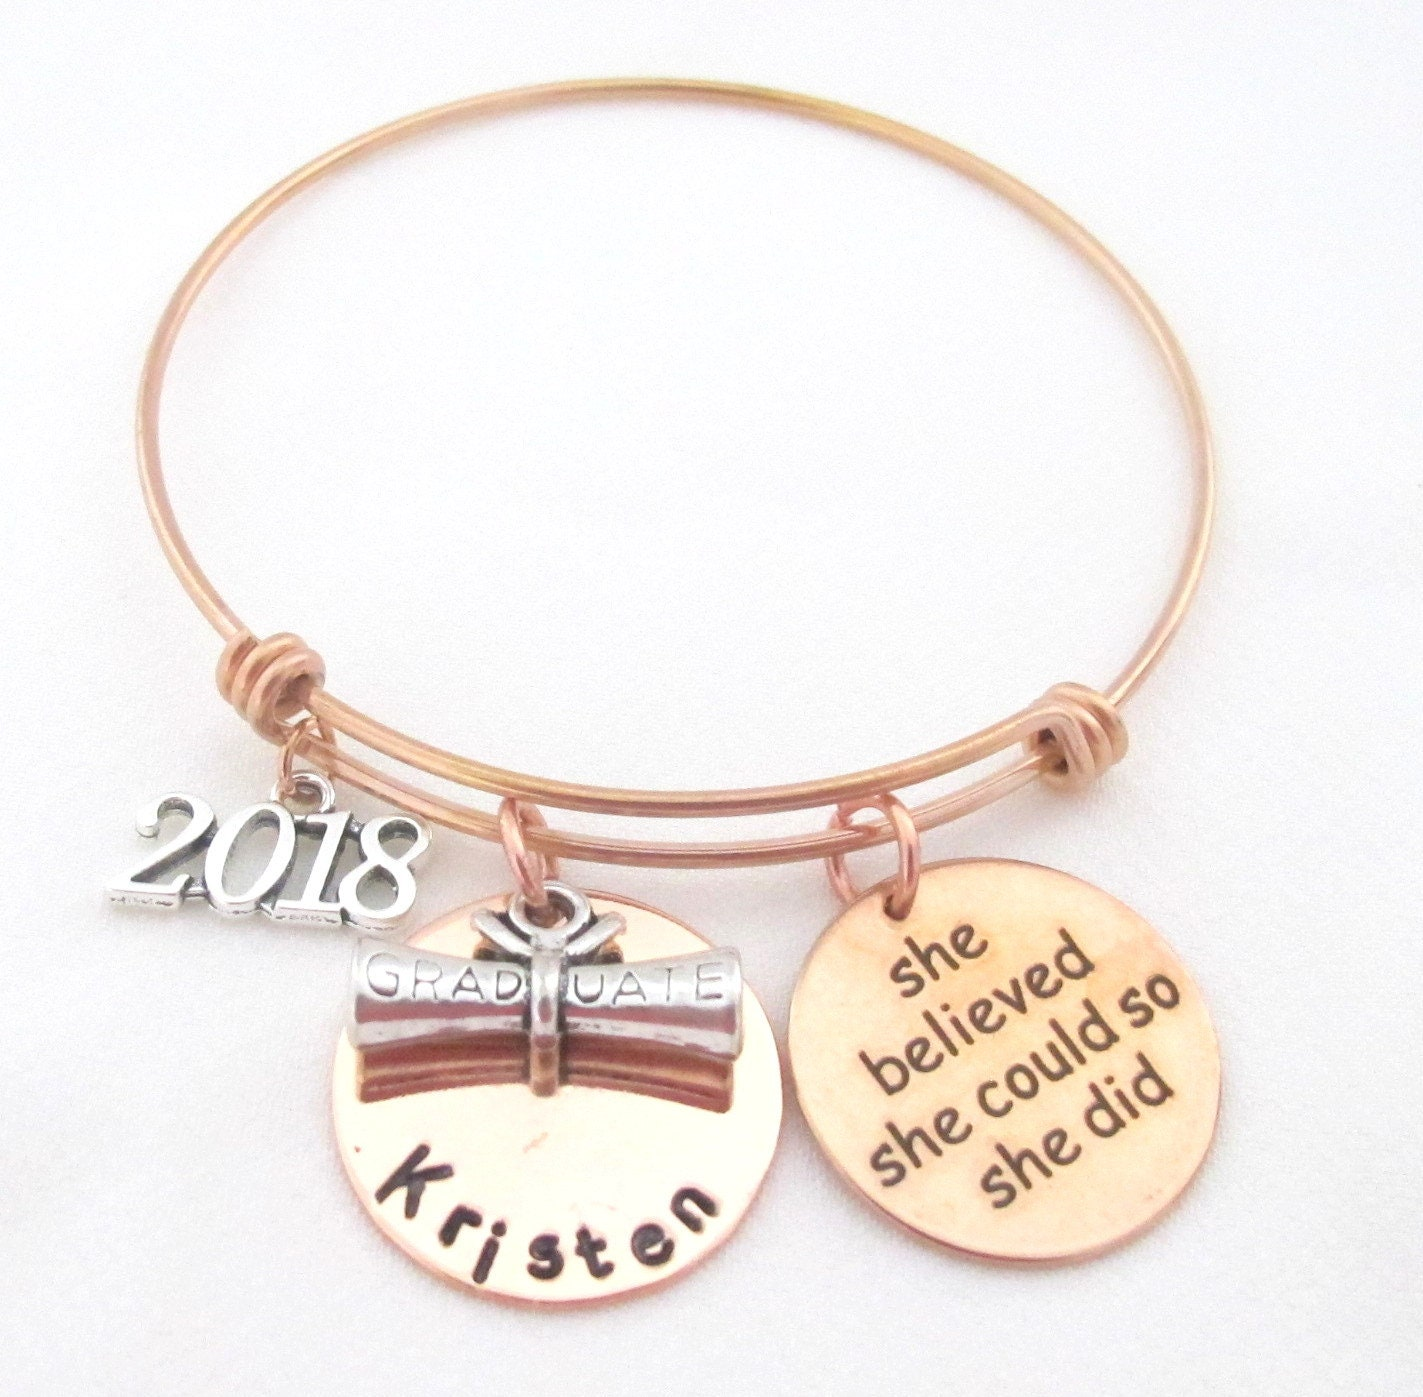 image jewellery bracelet graduation freckle products face bangle